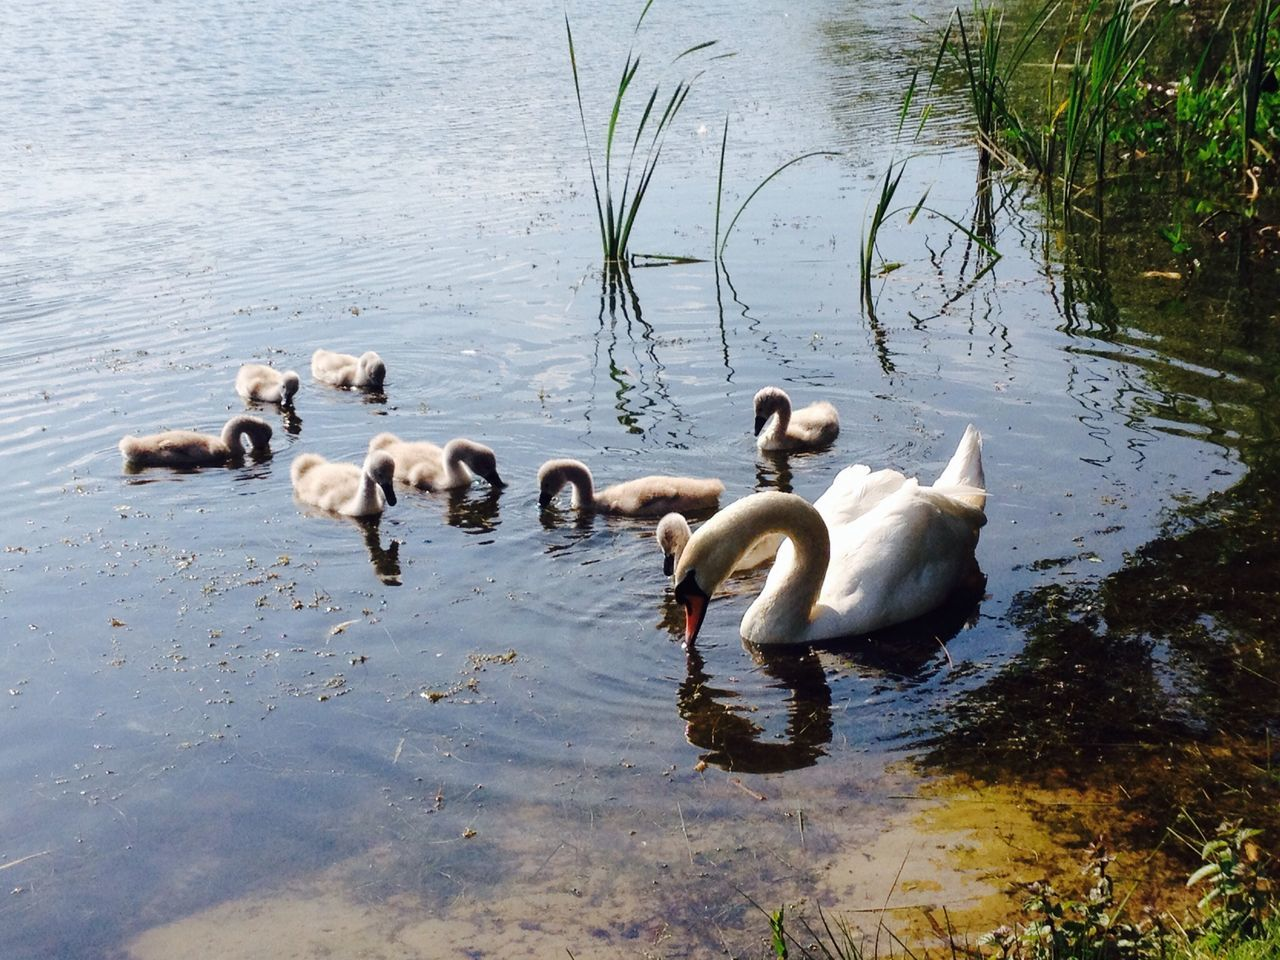 lake, water, animal themes, animals in the wild, bird, reflection, young animal, no people, young bird, swan, nature, large group of animals, animal wildlife, swimming, togetherness, animal family, day, outdoors, cygnet